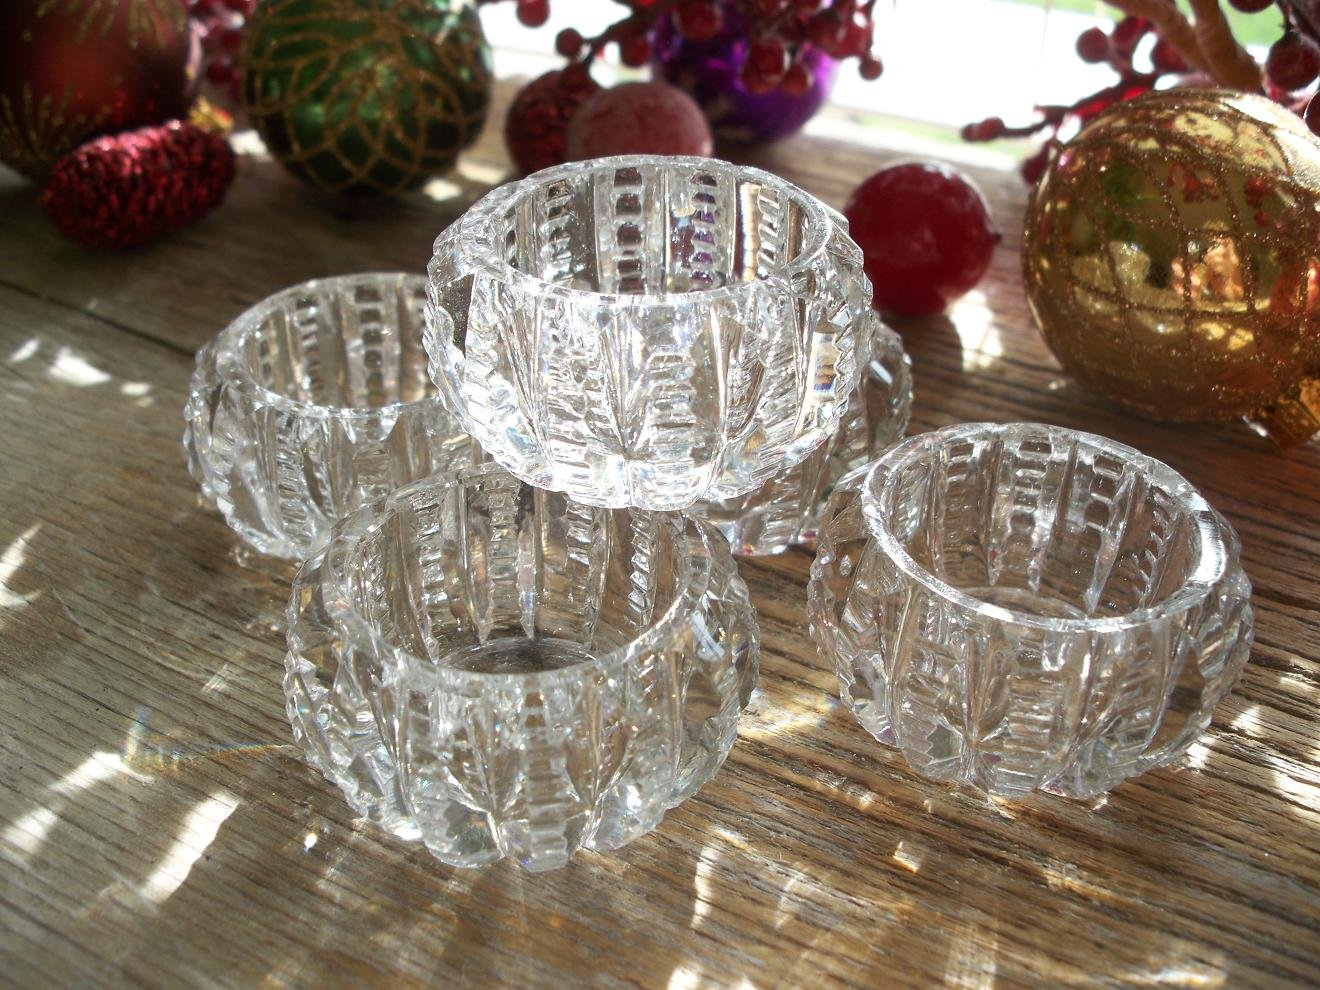 Set of 5 Pitkins & Brooks ABP American Brilliant PRISM Zipper Cut Glass Celery~Salt Dip/Dips